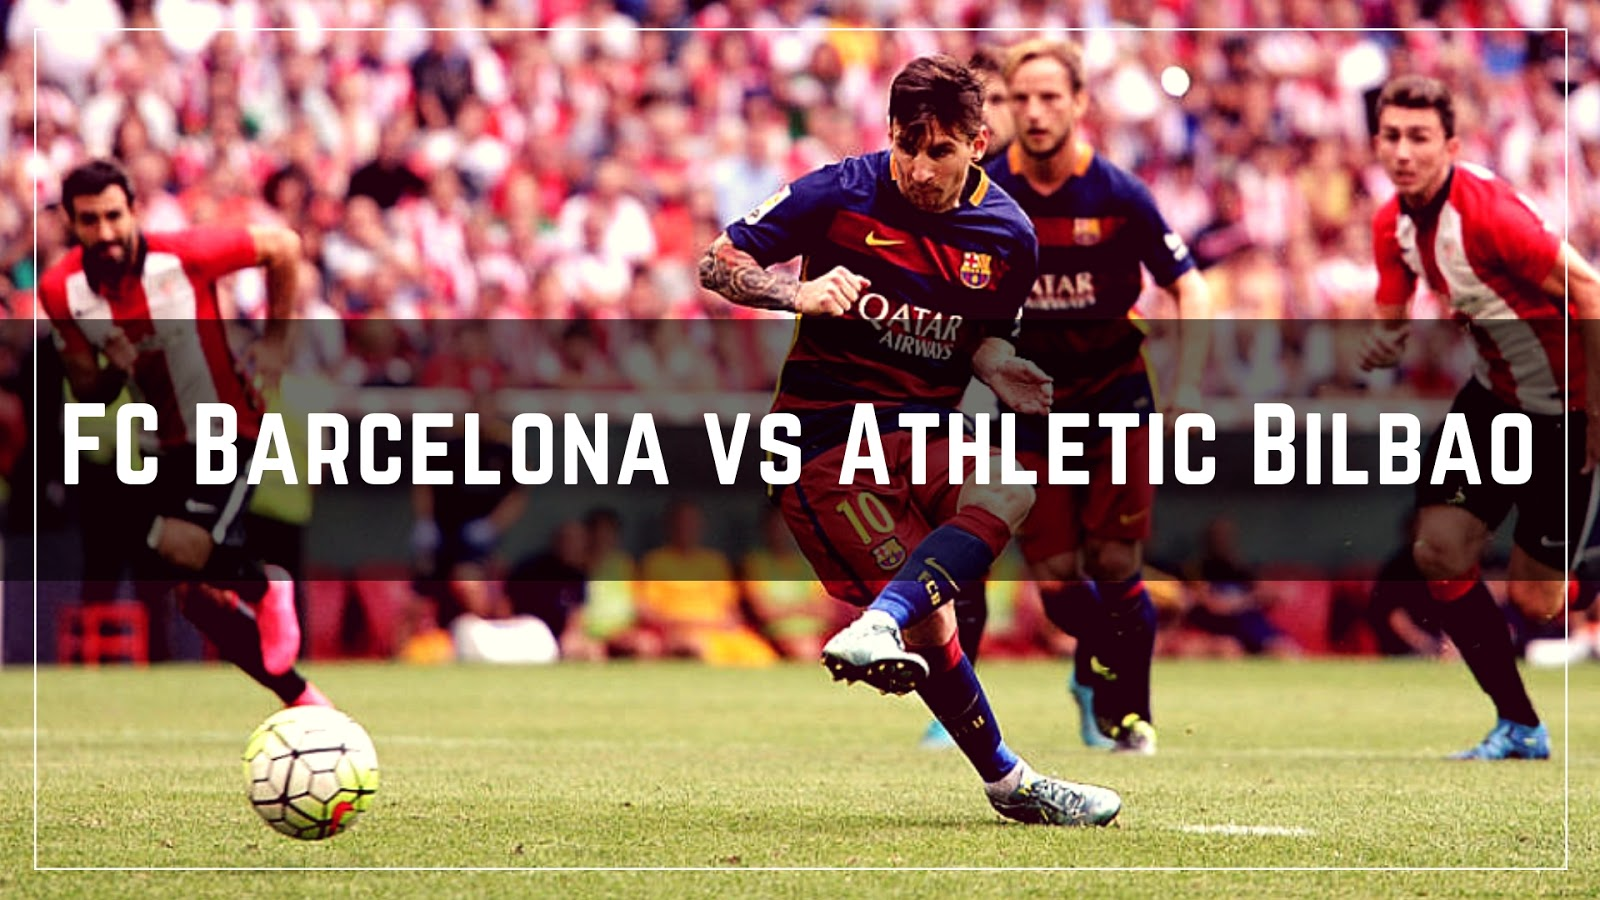 Lionel Messi scoring against Athletic Bilbao #lionelmess #messi #barcelona #barca #fcbarcelona